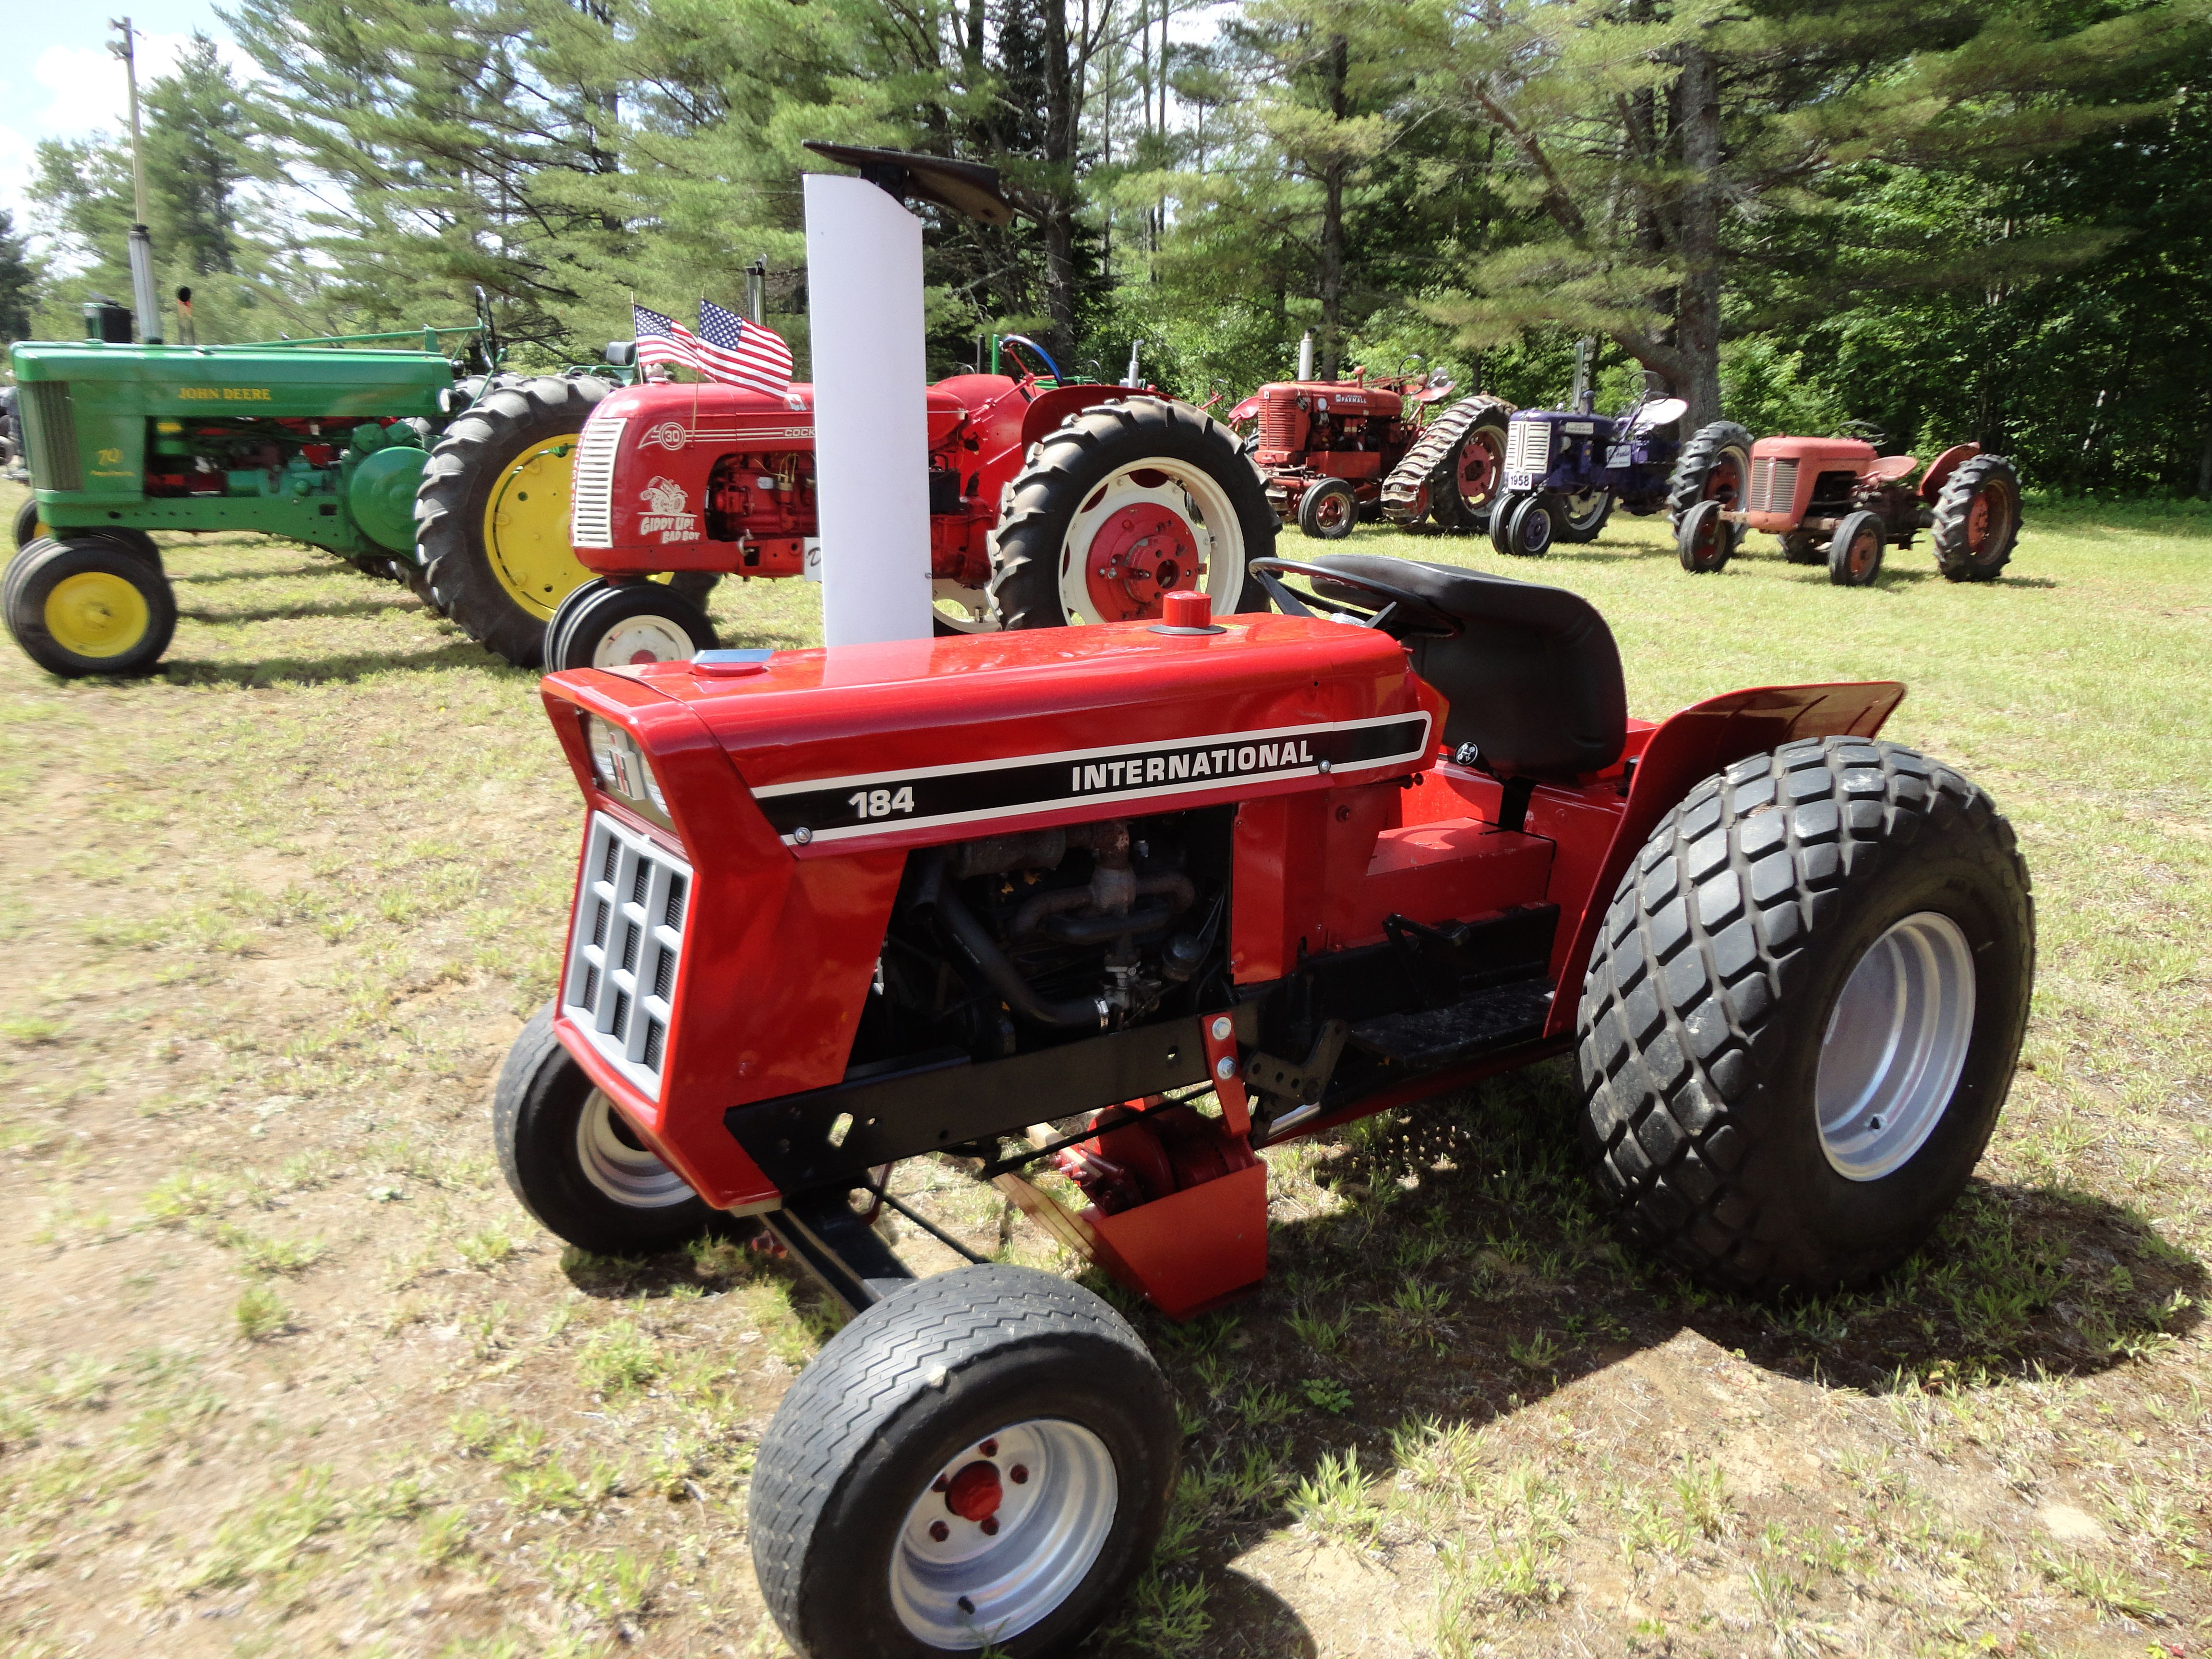 184 International Tractor. | Only Red Tractors | Tractors ... on